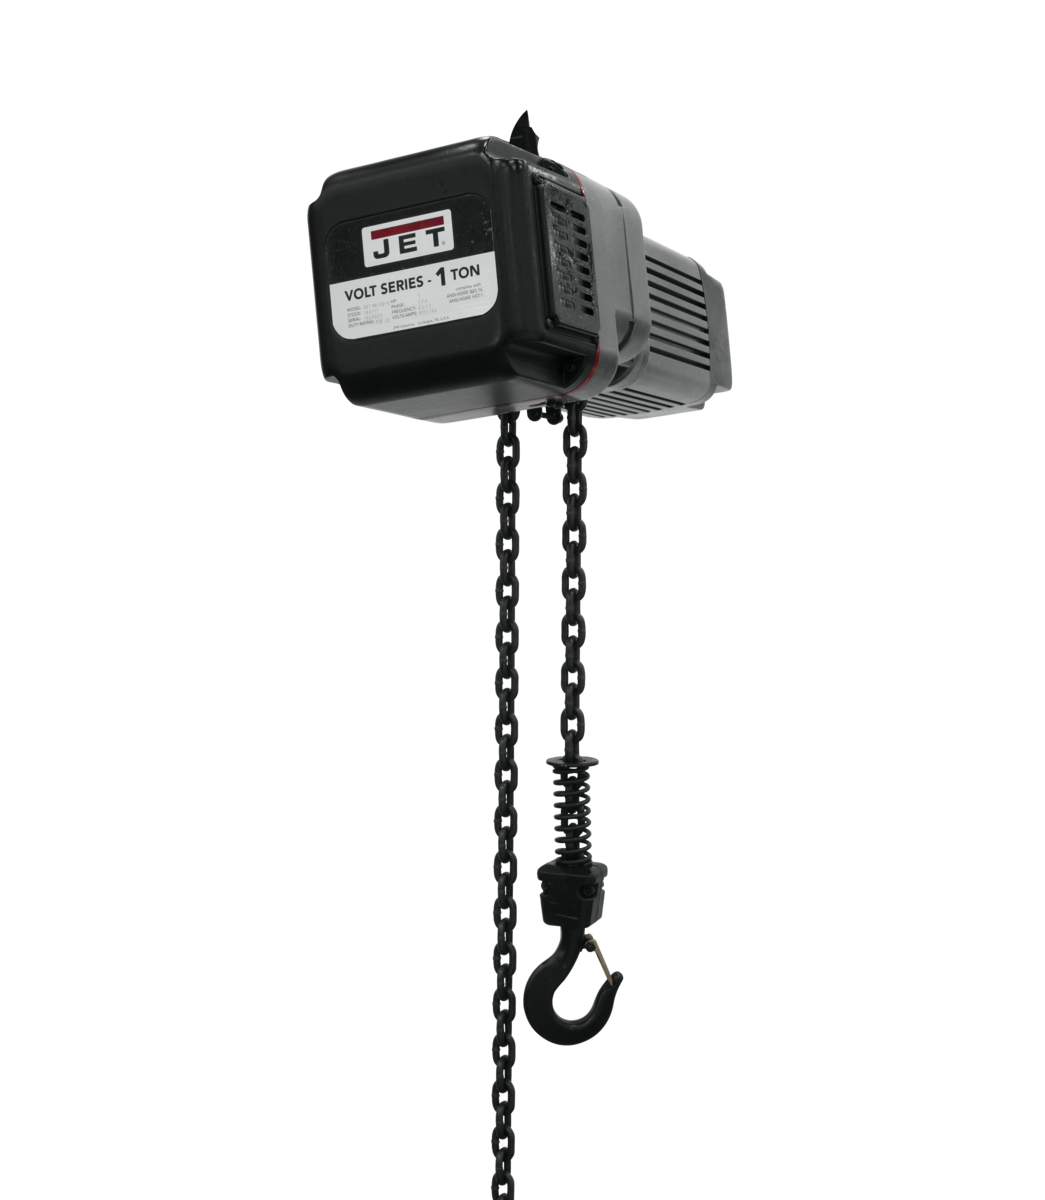 VOLT 1T VARIABLE-SPEED ELECTRIC HOIST 3PH 460V 20' LIFT